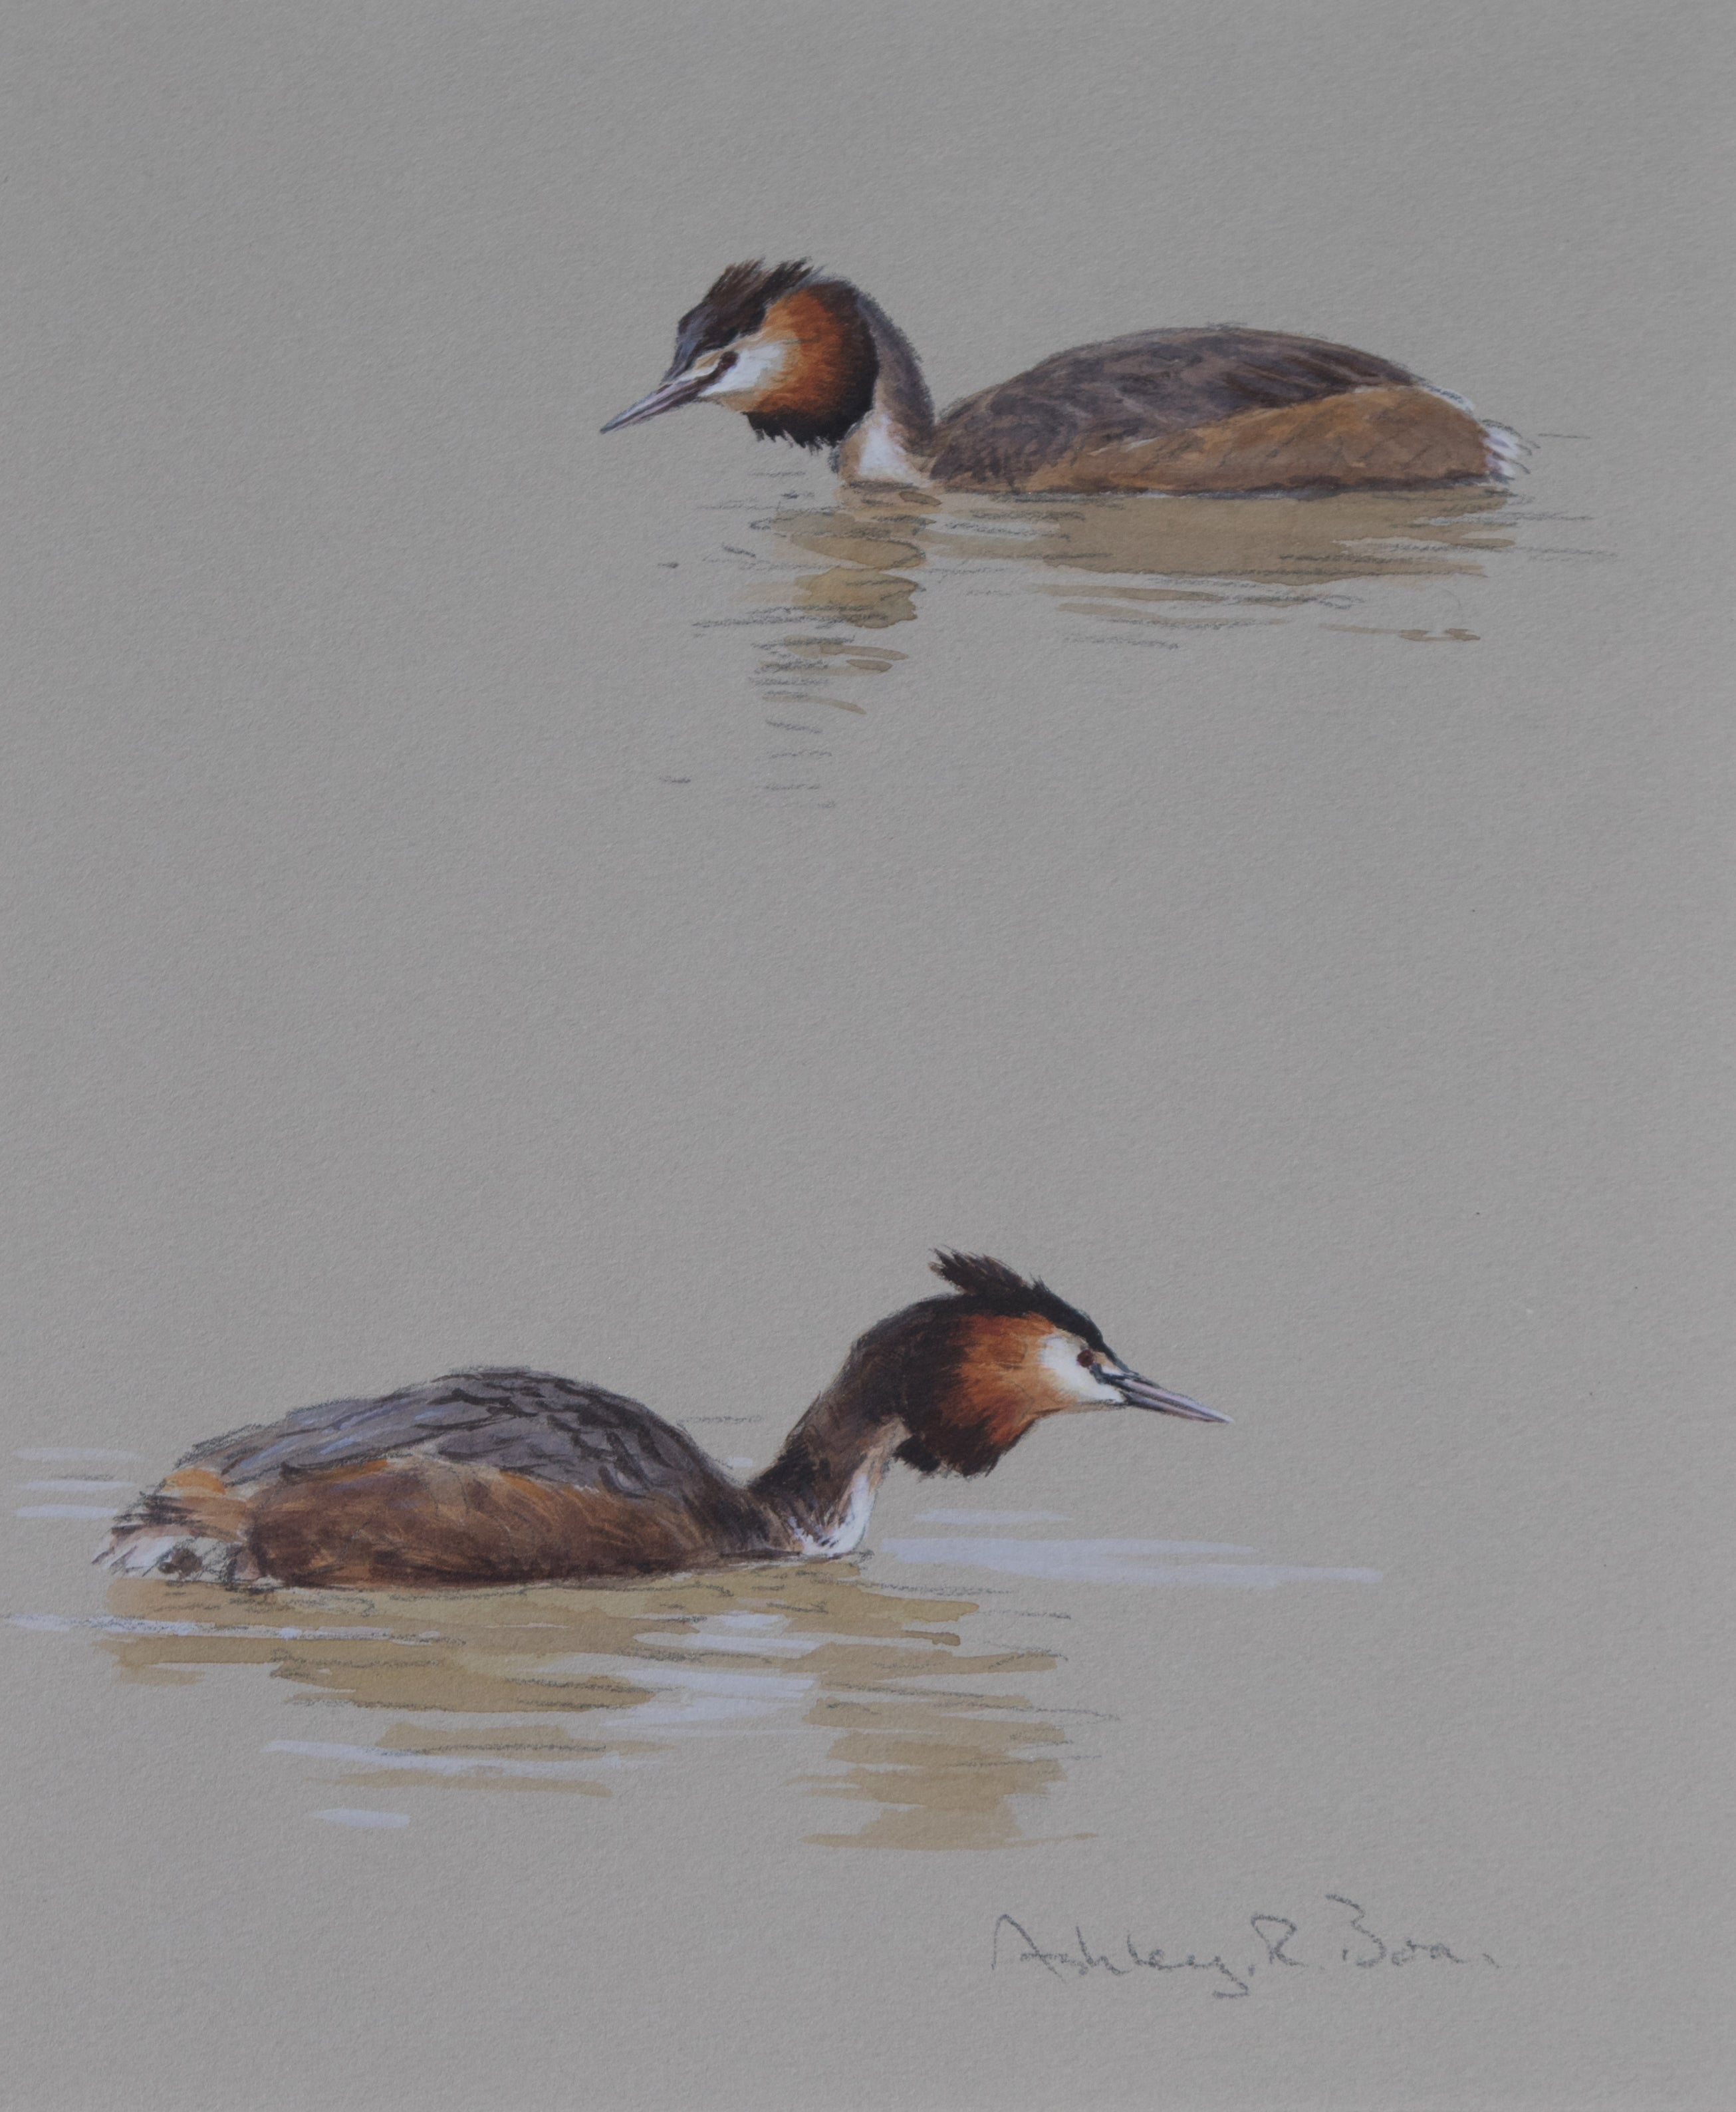 "'Great Crested Grebe Studies' - Original watercolour by Ashley Boon - 9.5"" x 8"""